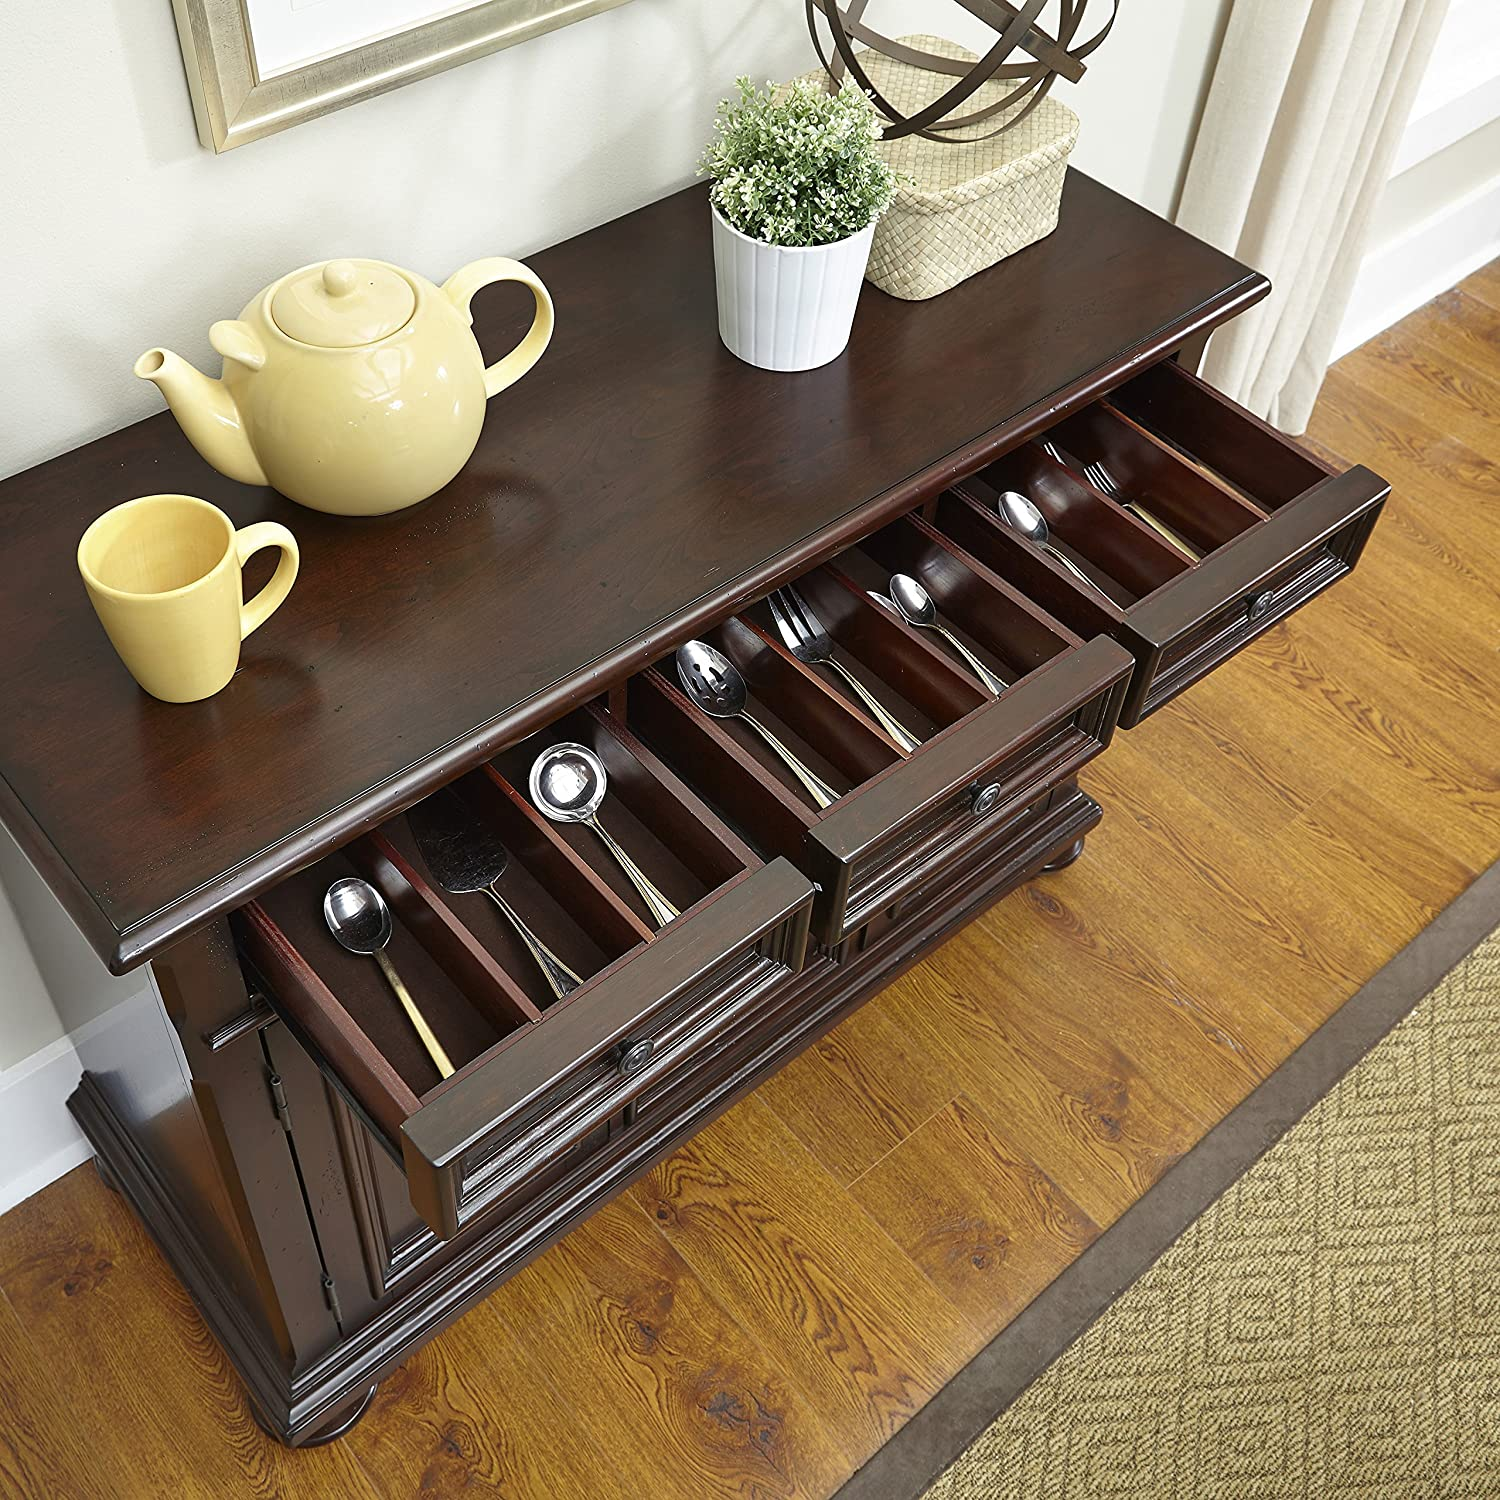 Price cut limited time offer shop now for the best selection hurry - Amazon Com Home Styles Furniture 5528 61 Colonial Classic Buffet Buffets Sideboards